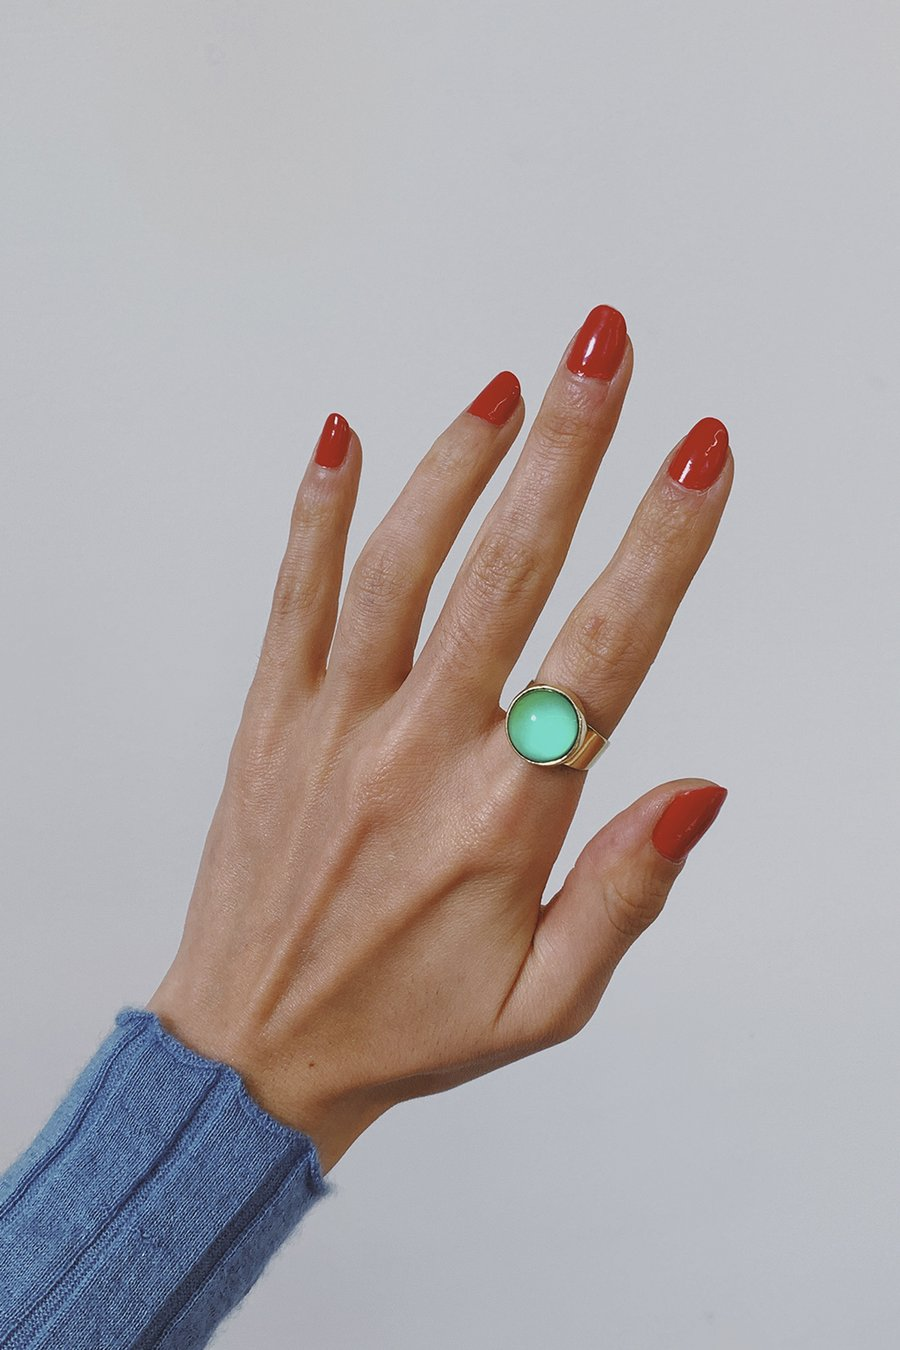 Mood Ring - $175If this doesn't take you back to middle school in all be best ways, IDK what will!